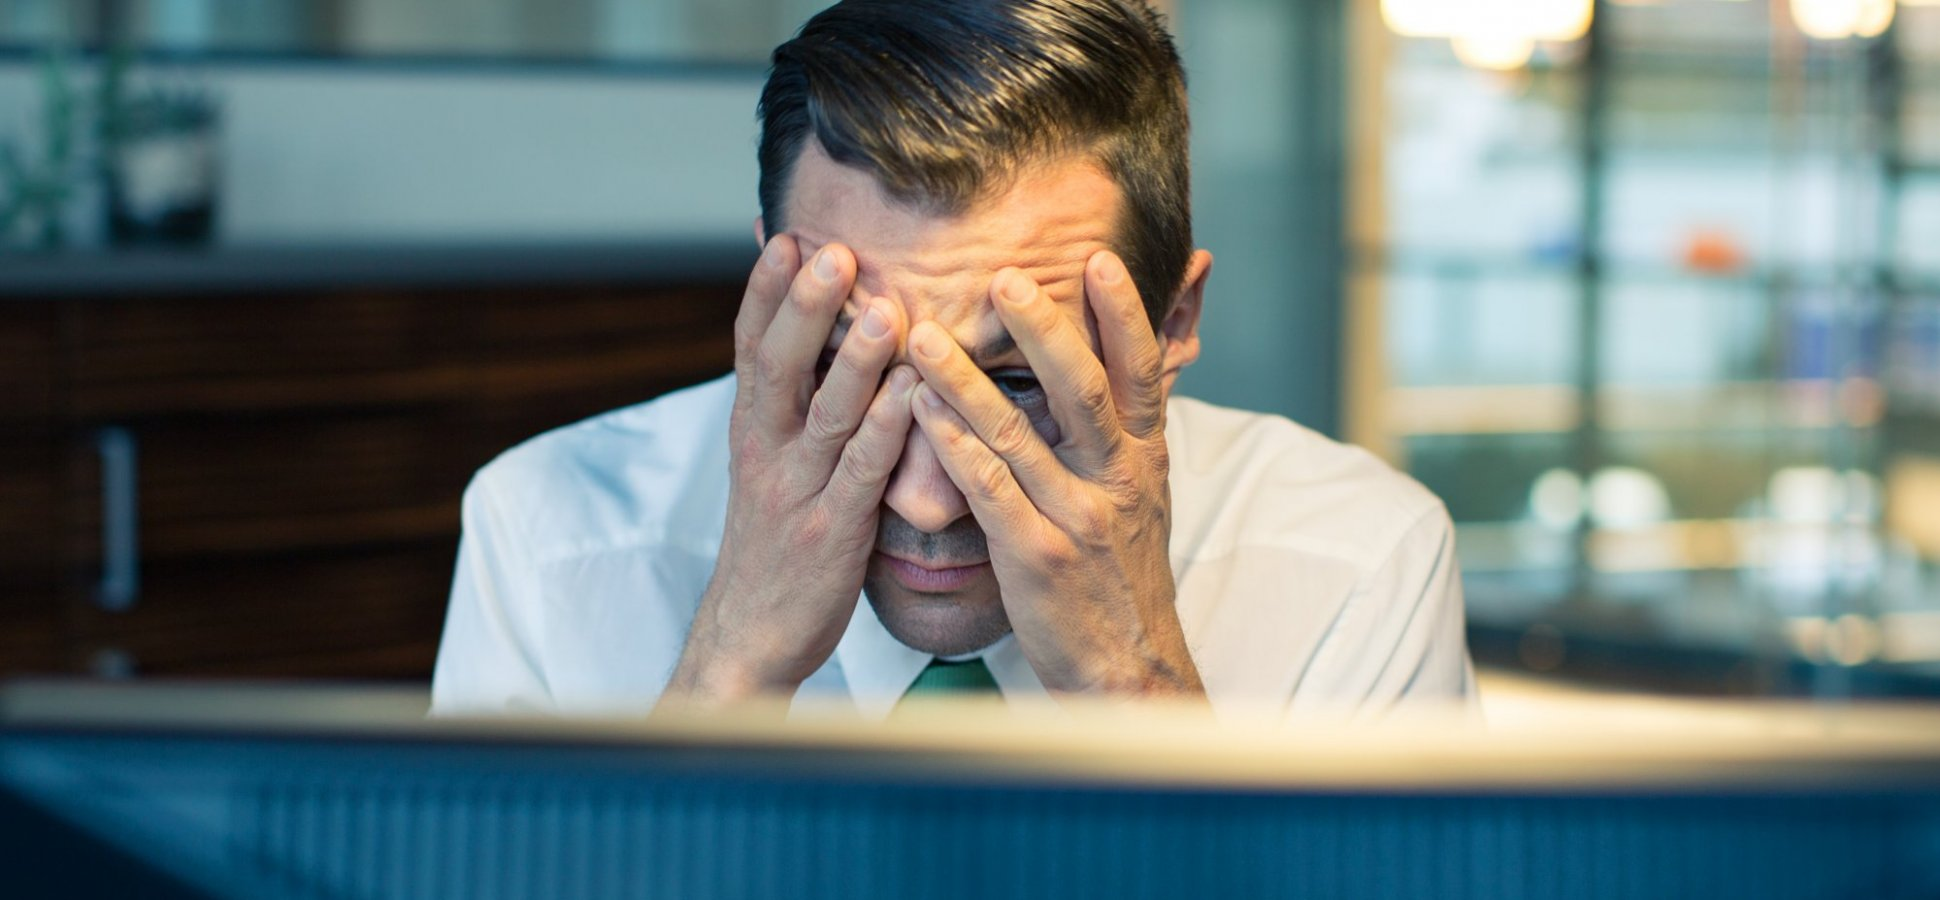 4 Unexpected Factors that Could Be Ruining Your Productivity